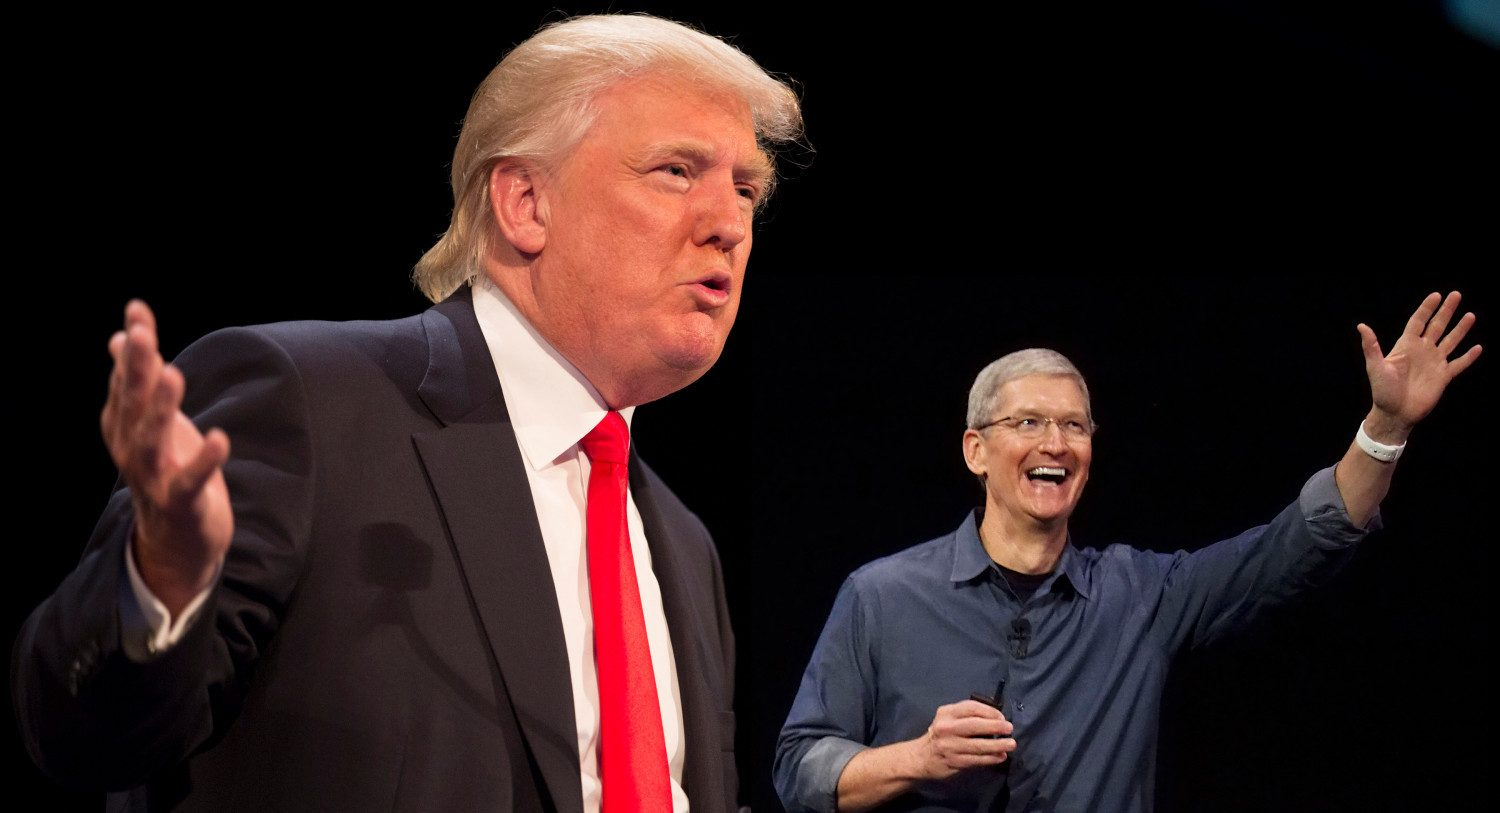 President Donald Trump and Tim Cook